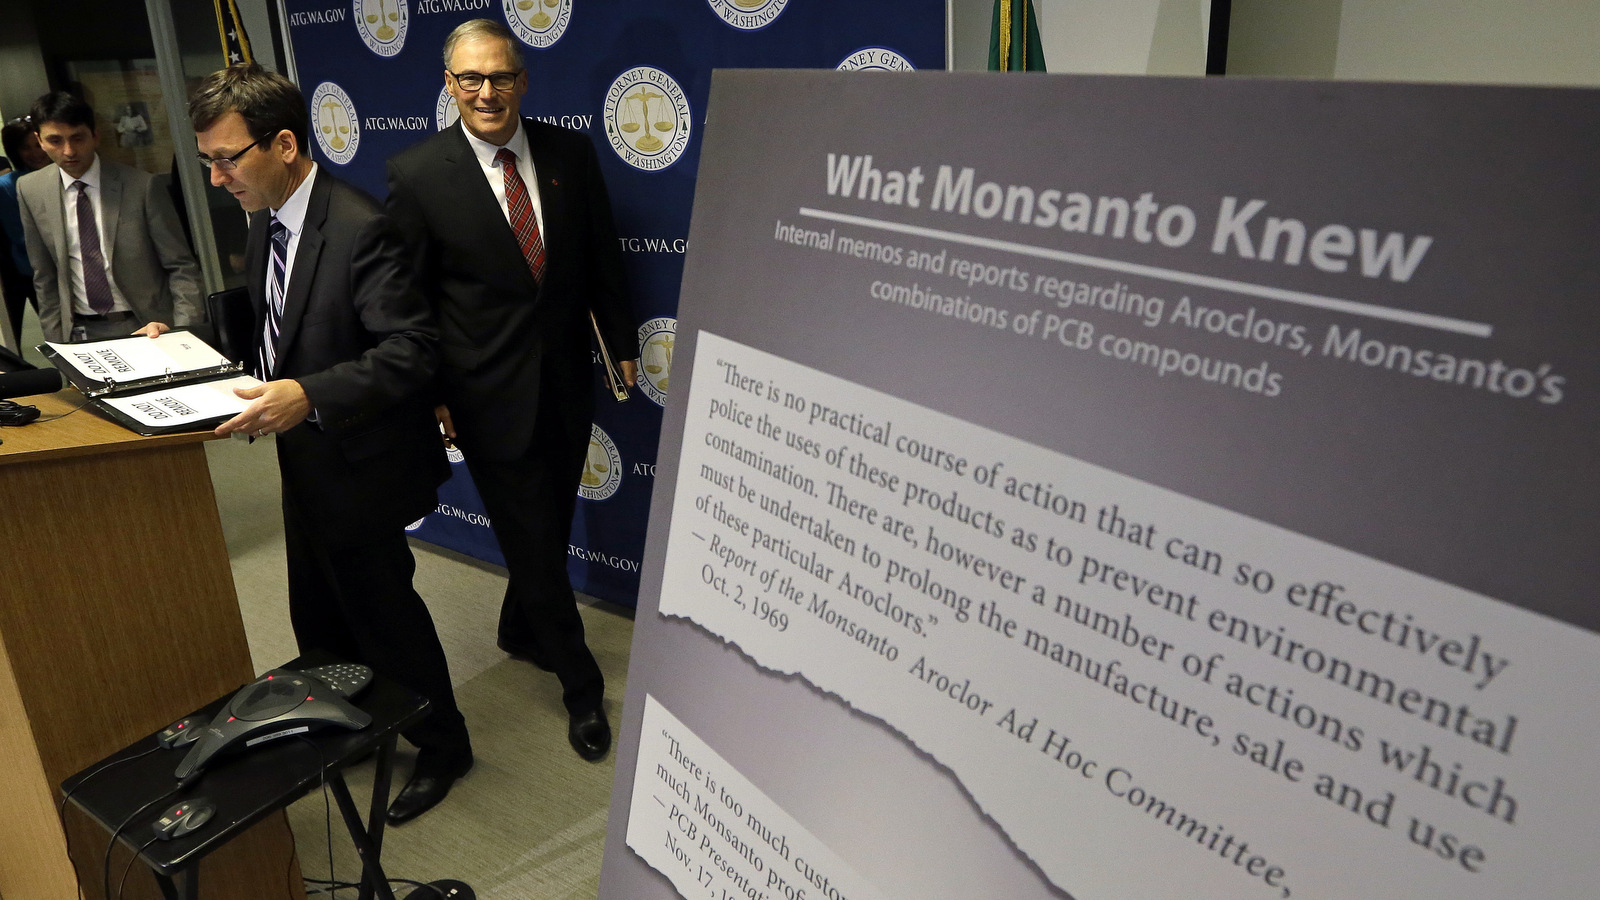 Washington says it's the first U.S. state to sue Monsanto over pollution from PCBs. The chemicals, polychlorinated biphenyls, were used in many industrial and commercial applications, including in paint, coolants, sealants and hydraulic fluids. PCB contamination impairs rivers, lakes and bays around the country.